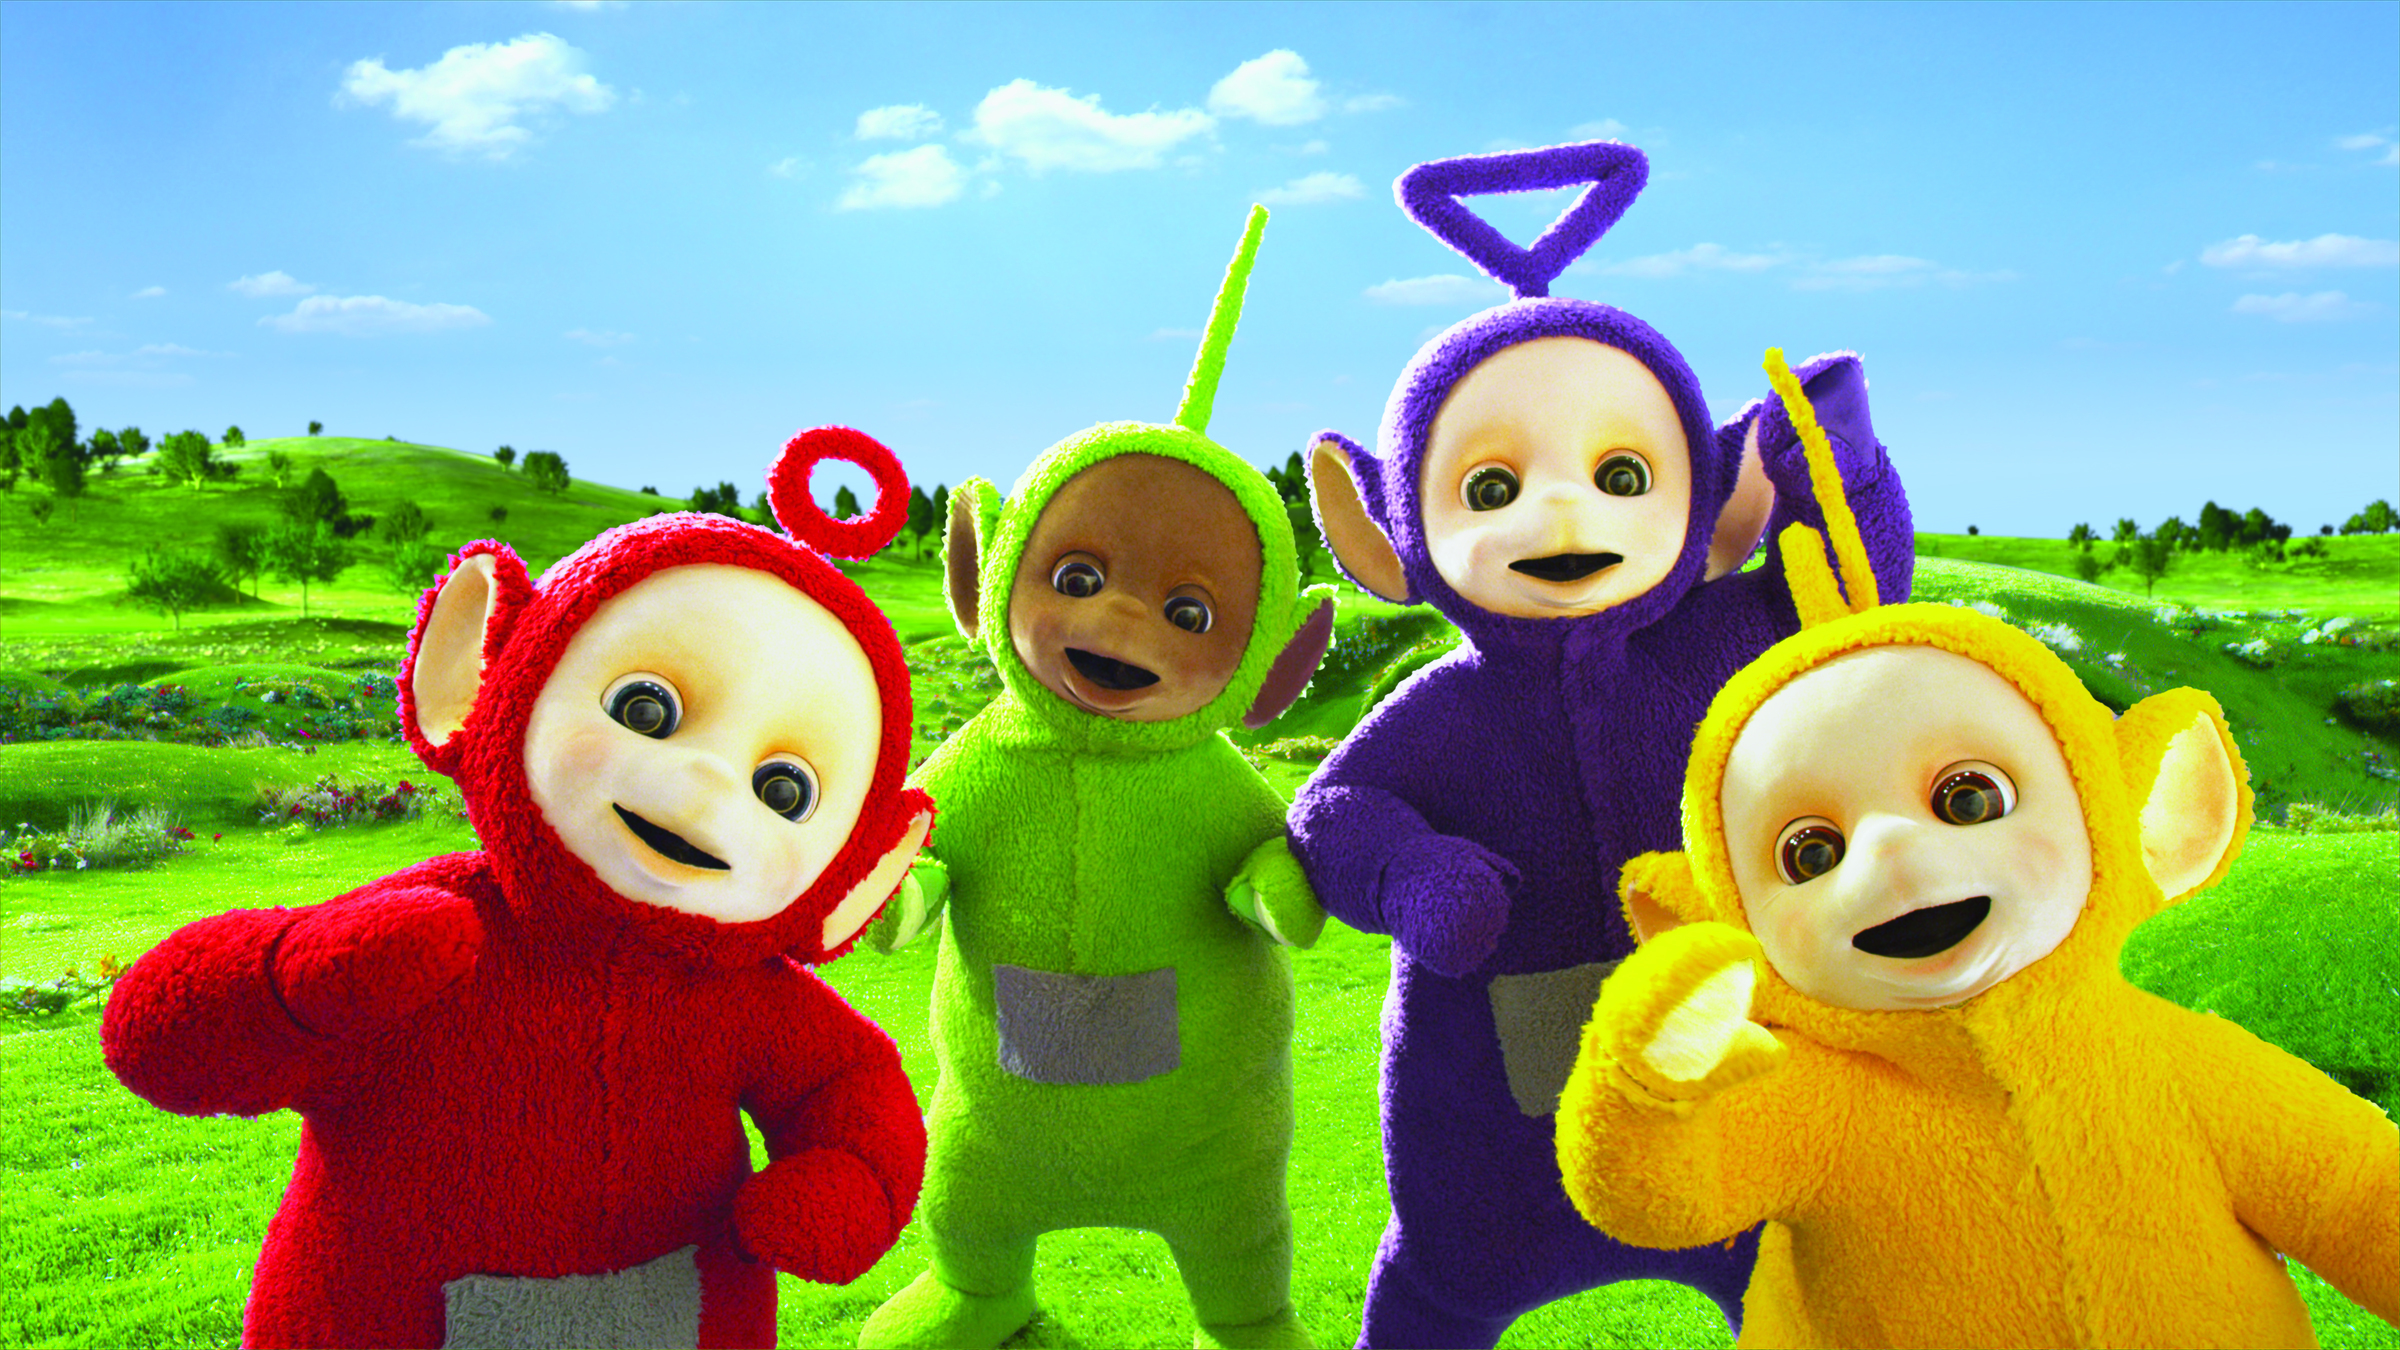 https://i1.wp.com/www.thriftymommastips.com/wp-content/uploads/2017/06/Teletubbies.jpg